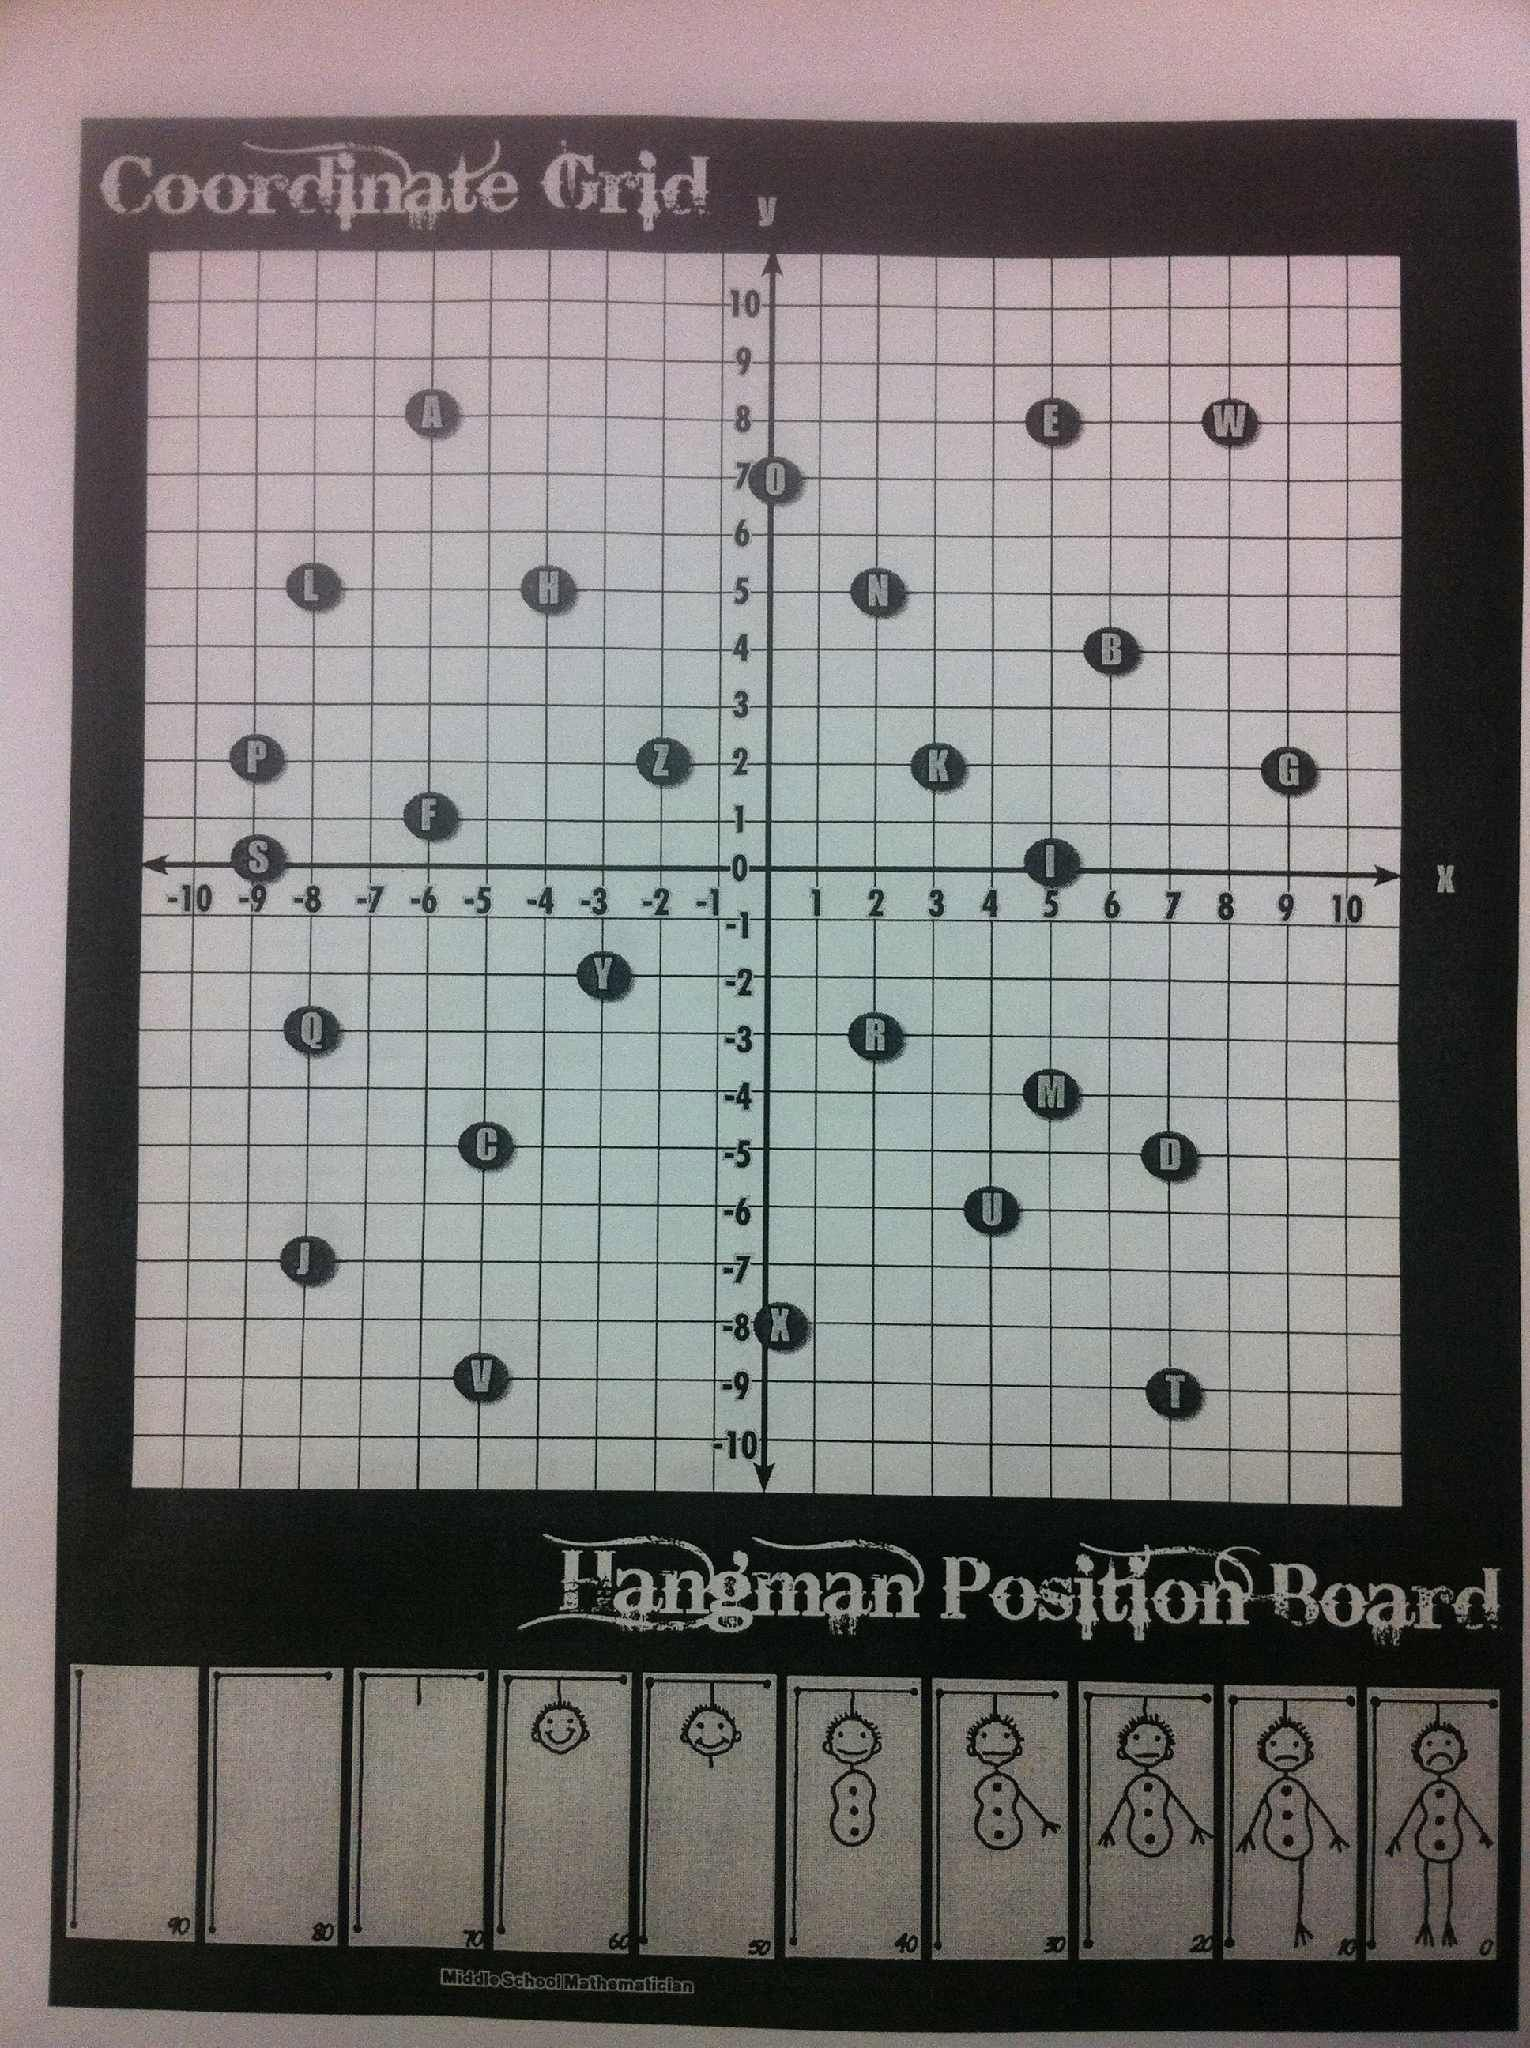 Coordinate Grid Hangman - give coordinates to 'guess' the letter for the  Hangman puzzles